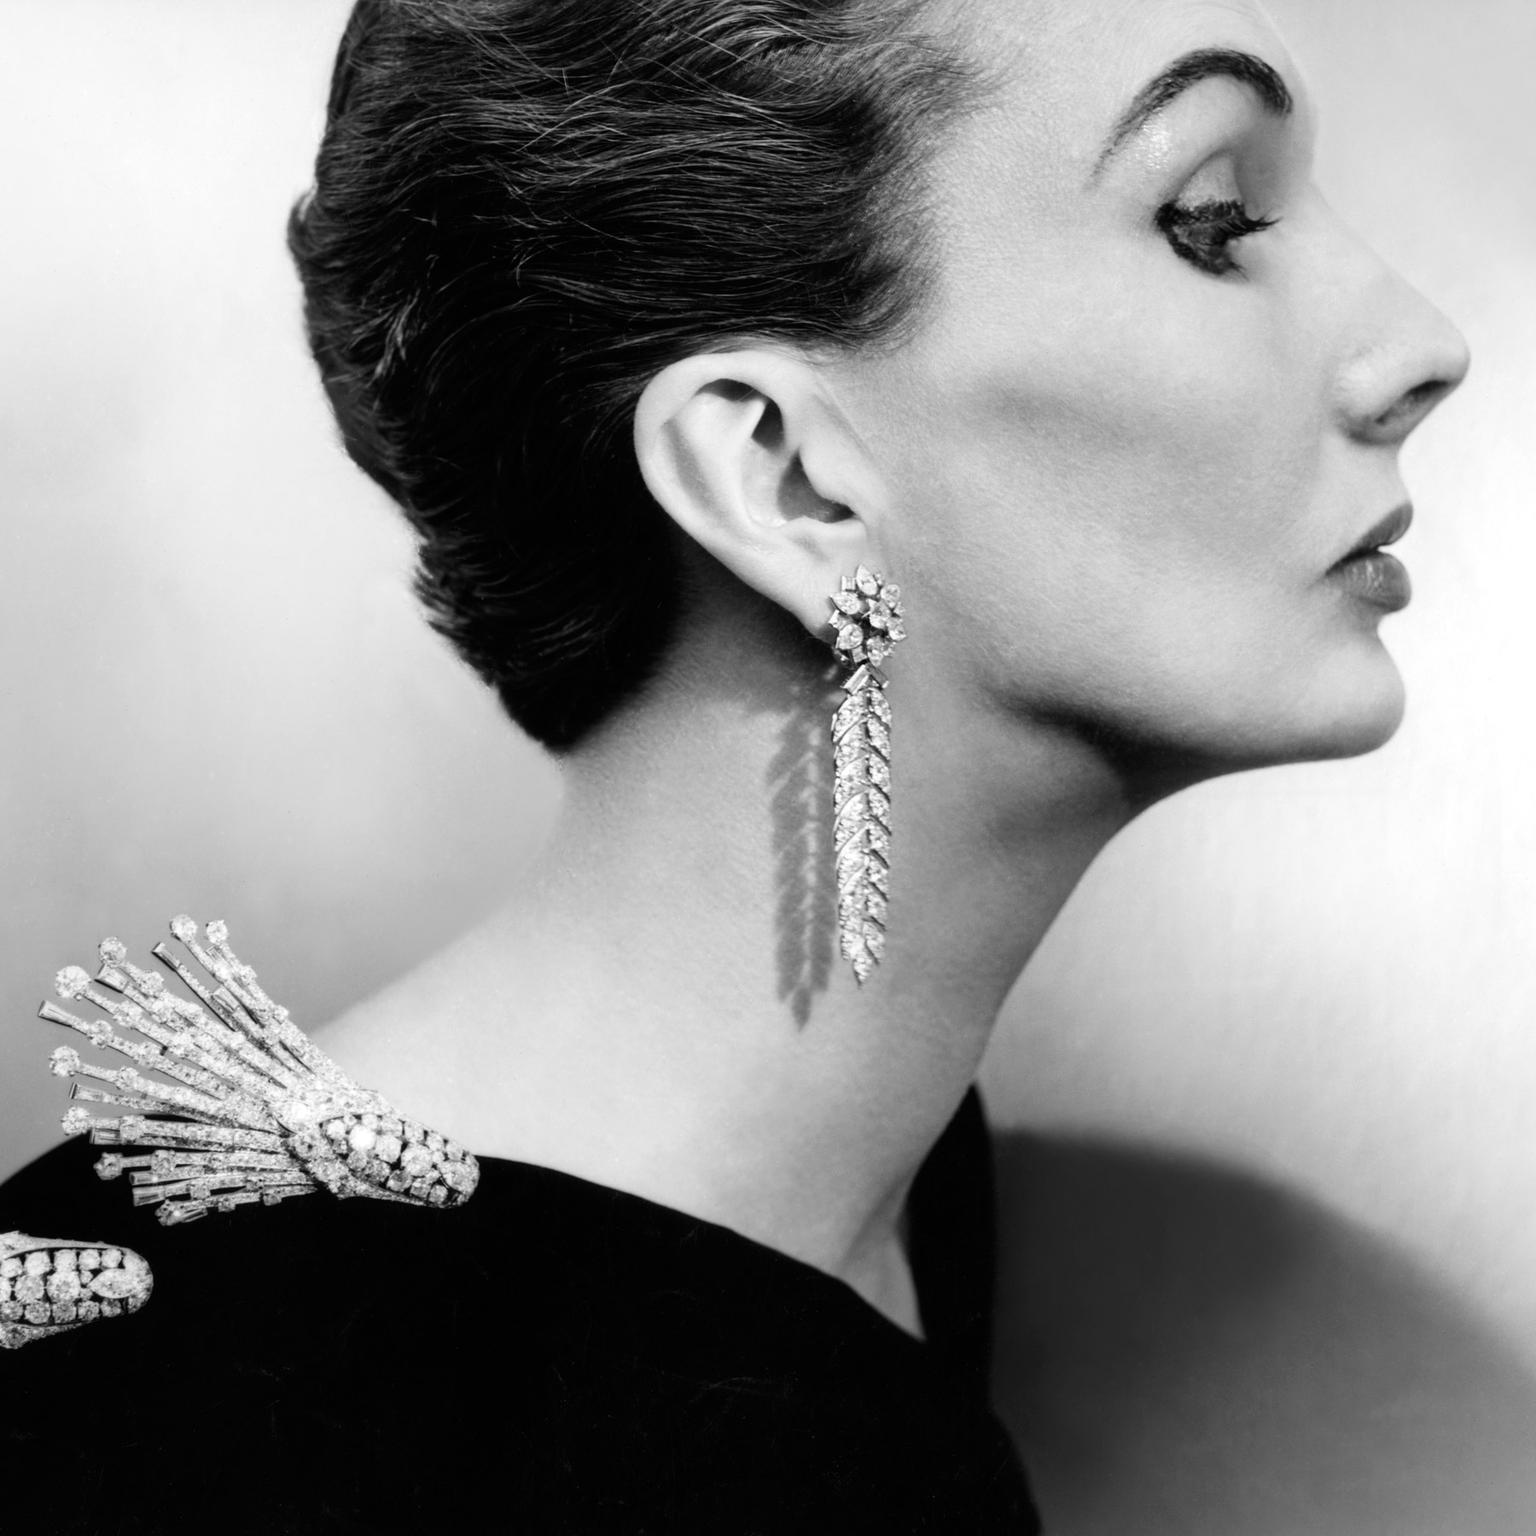 Cartier Vogue December 1951 Anthony Denney